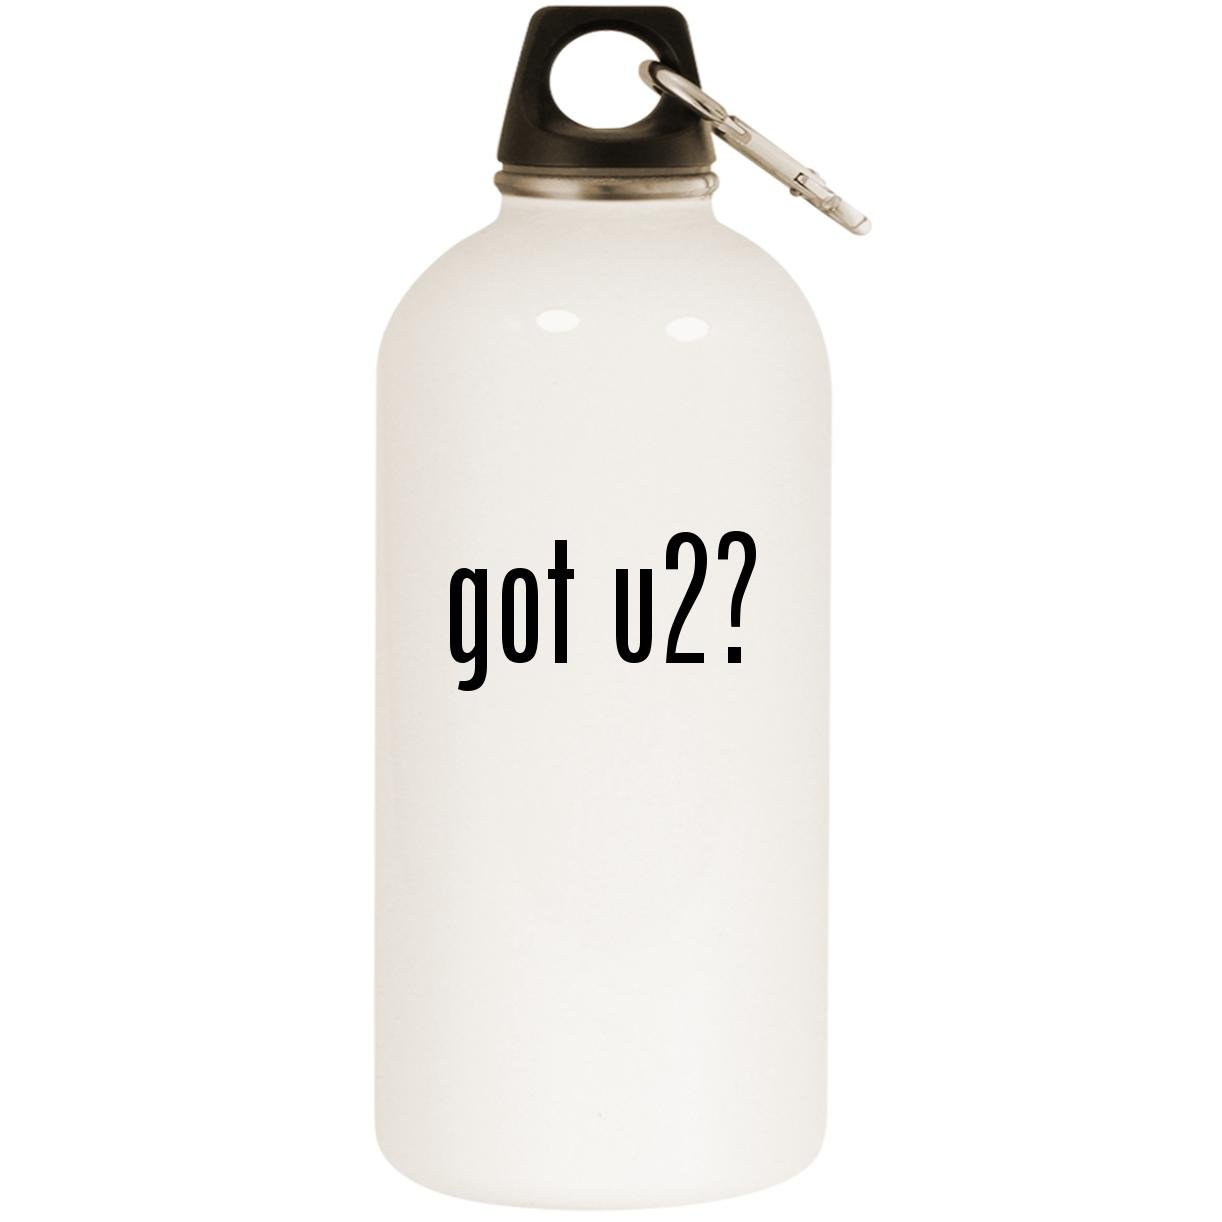 got u2? - White 20oz Stainless Steel Water Bottle with Carabiner